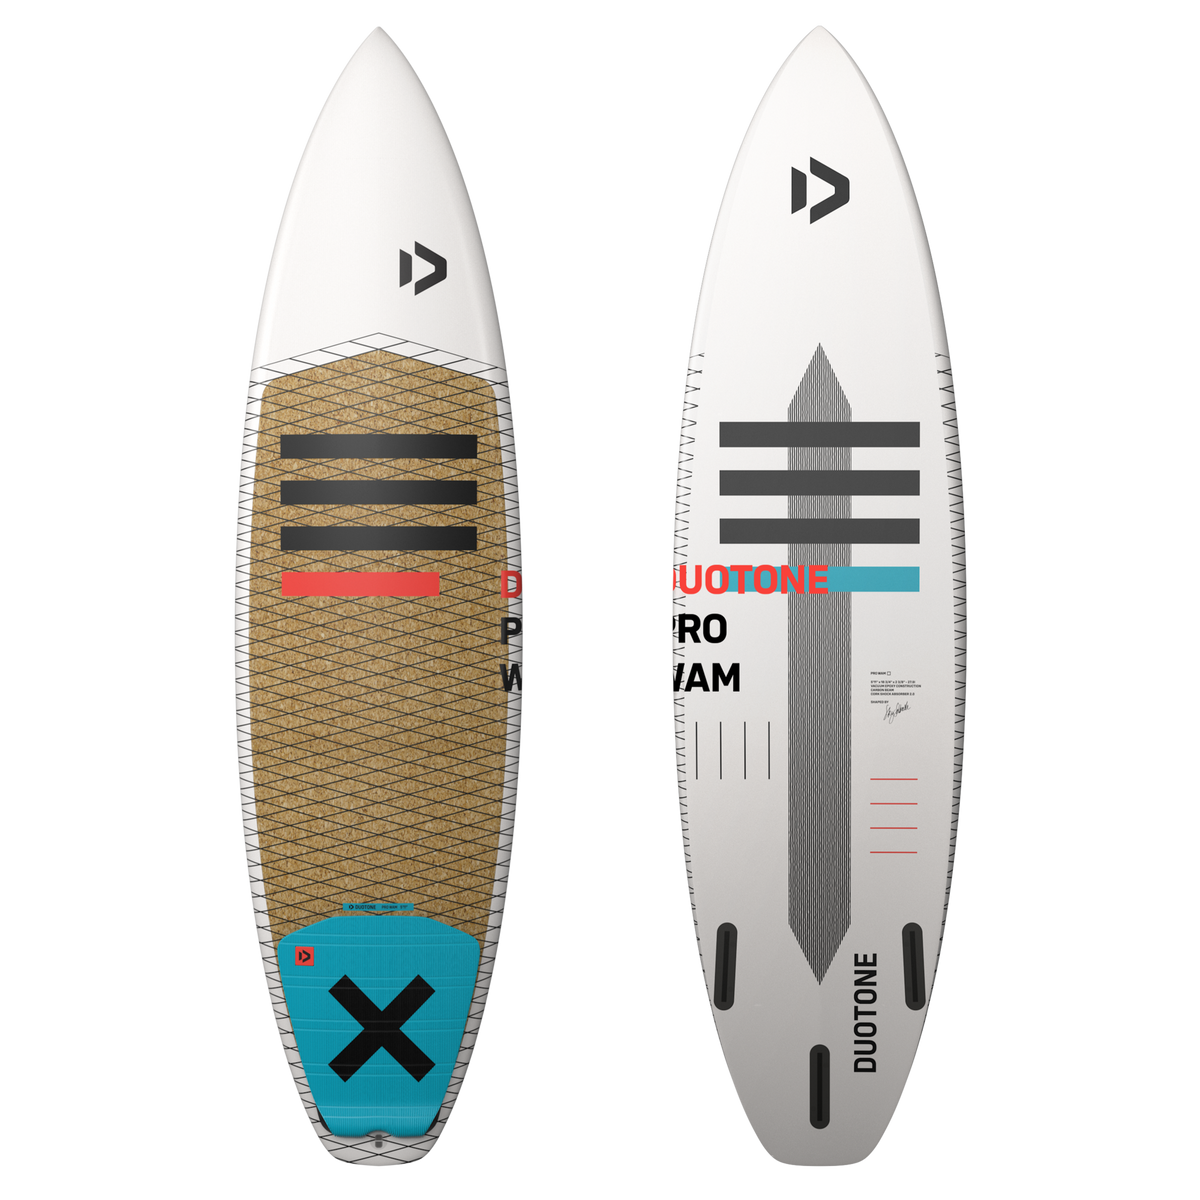 Kite Surfboard Rental